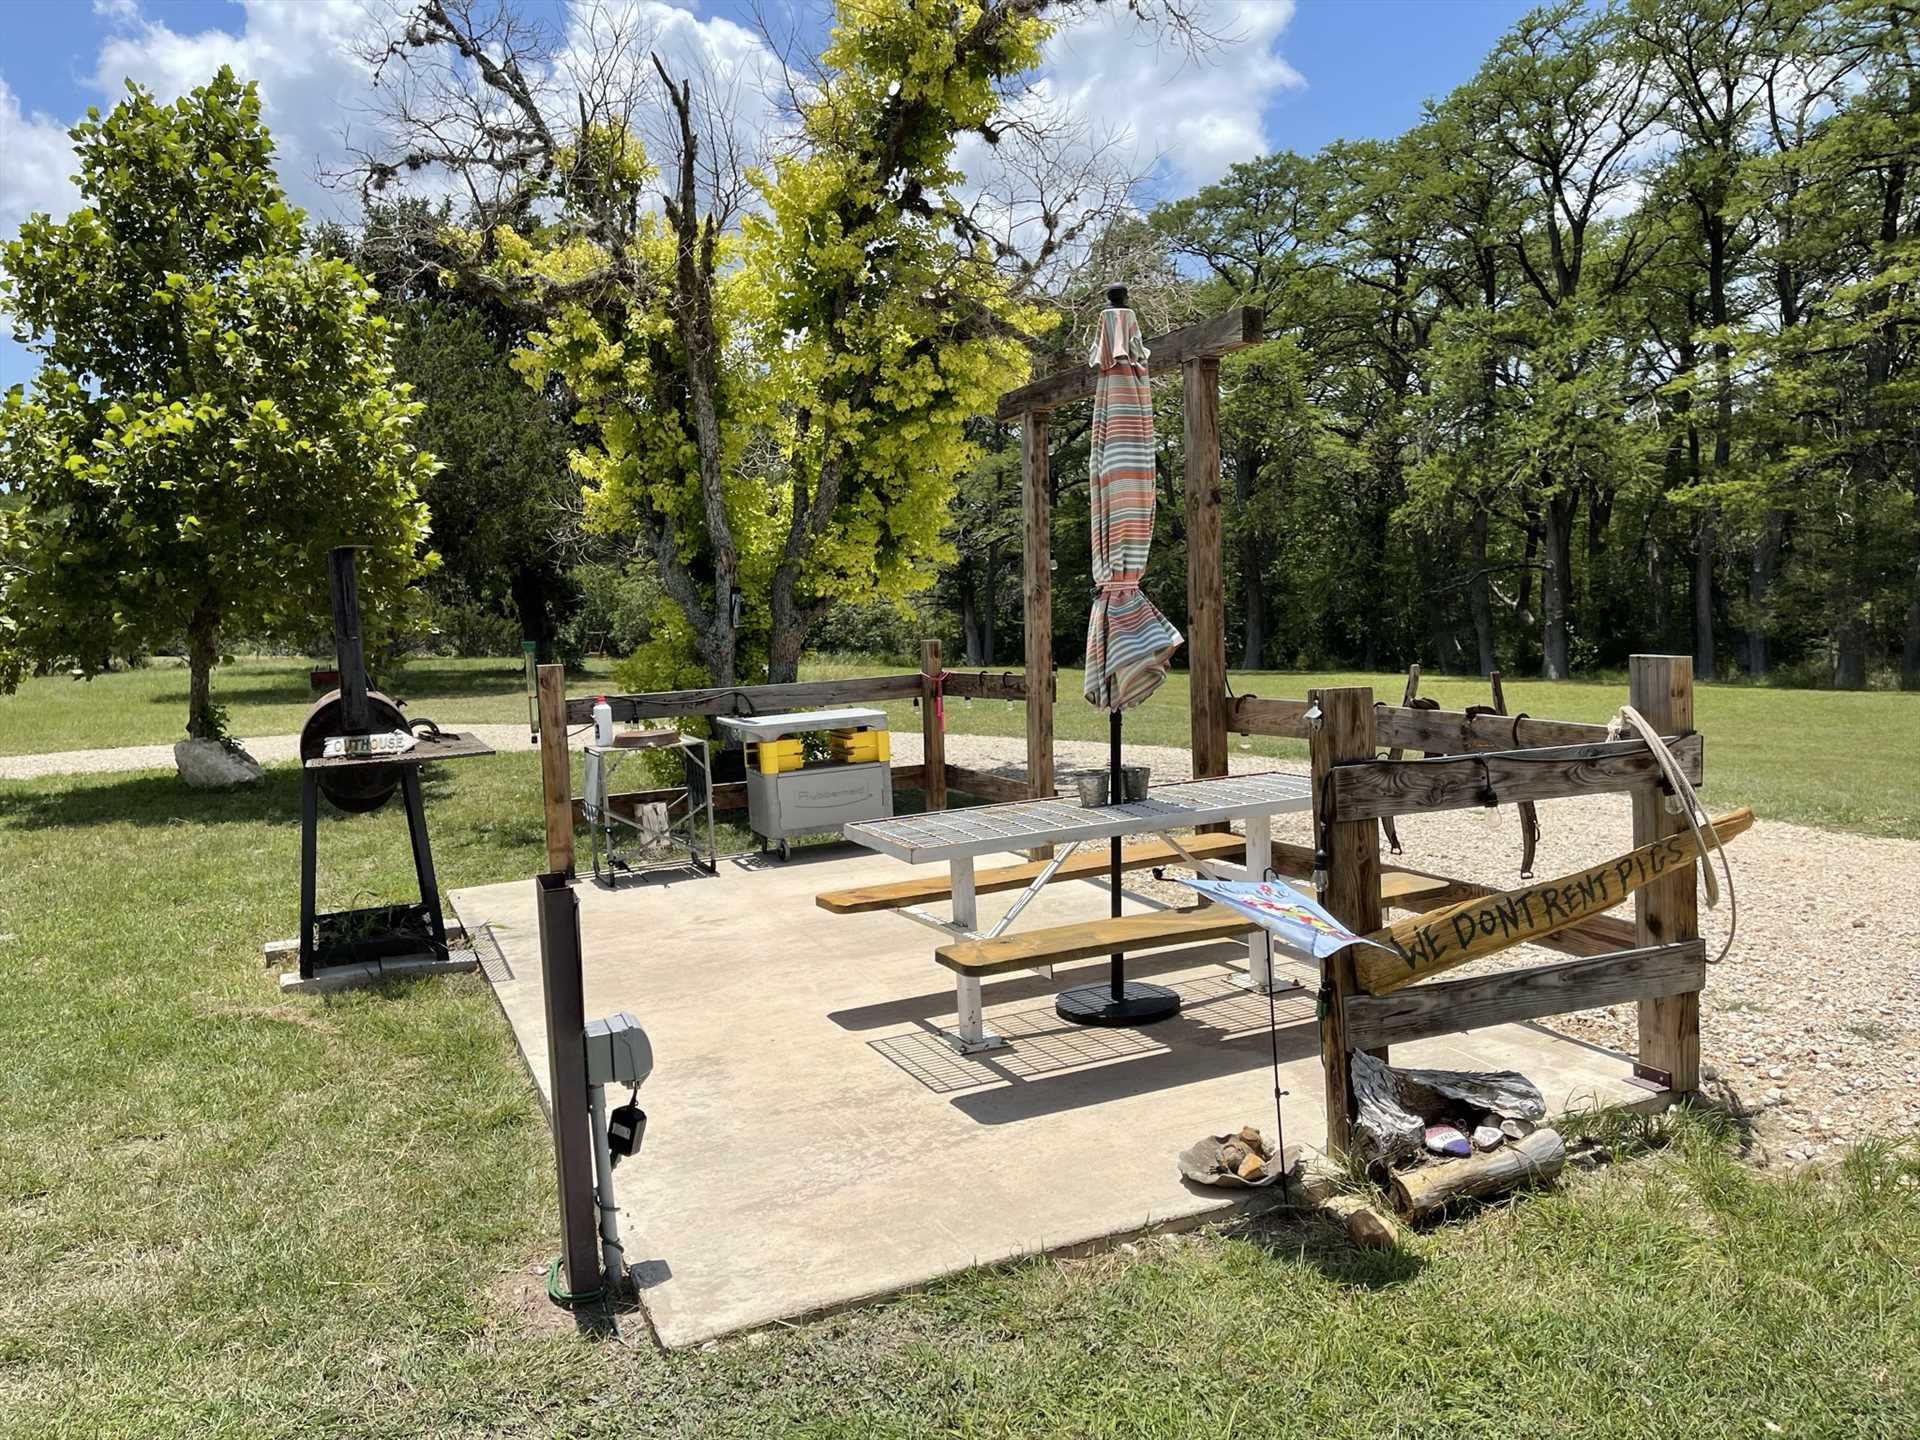 With a charcoal grill right there, the dedicated picnic area helps make outdoor feasts a snap!